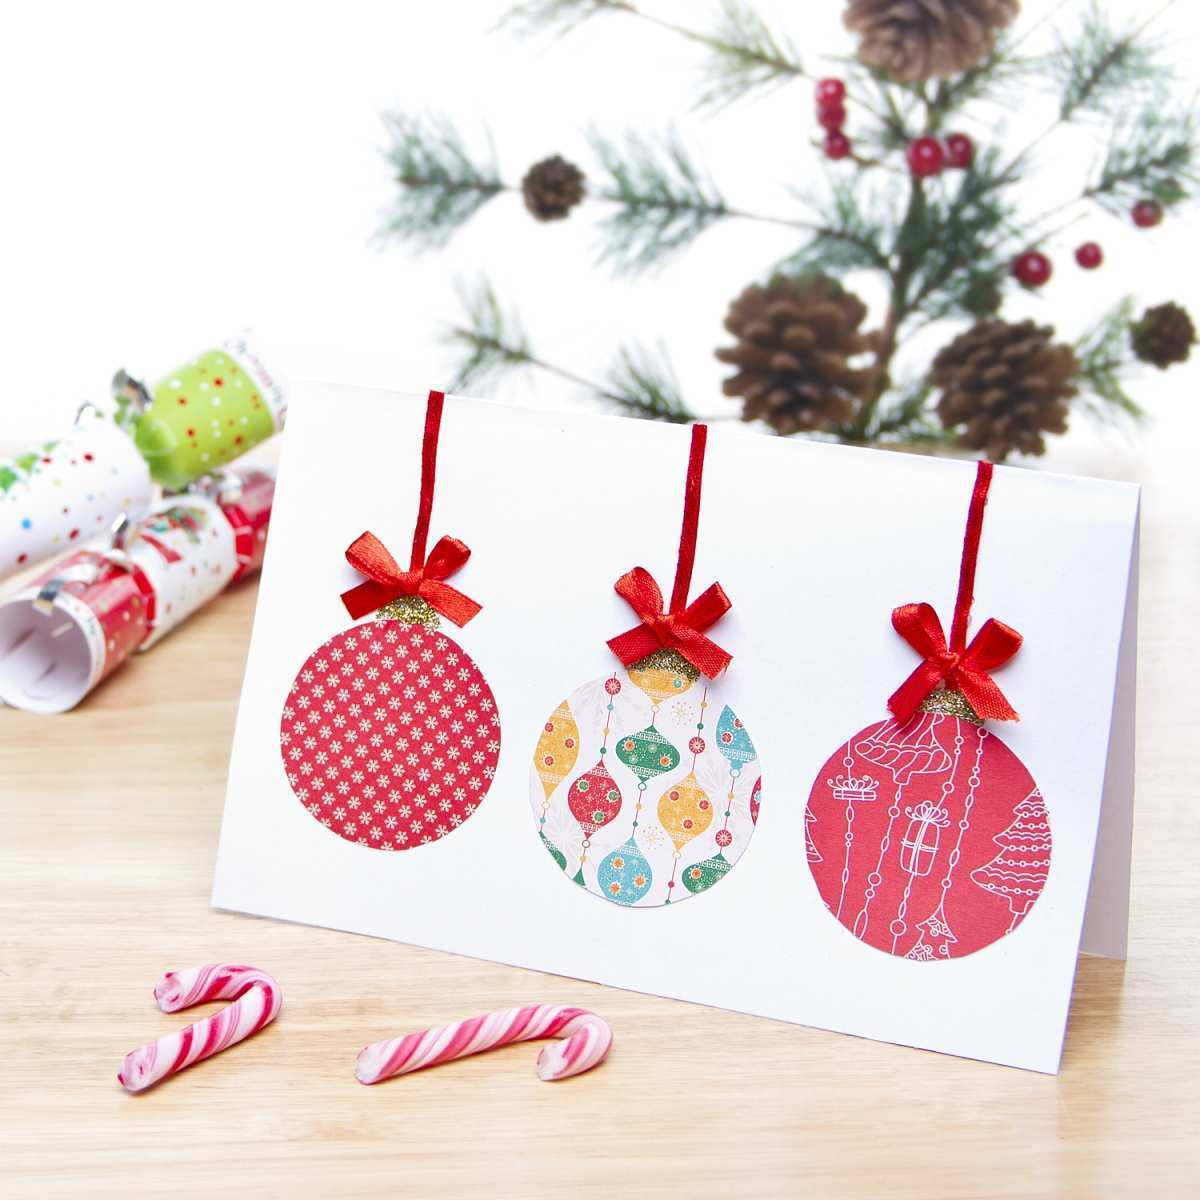 43 Free Christmas Bauble Card Template With Stunning Design for Christmas Bauble Card Template